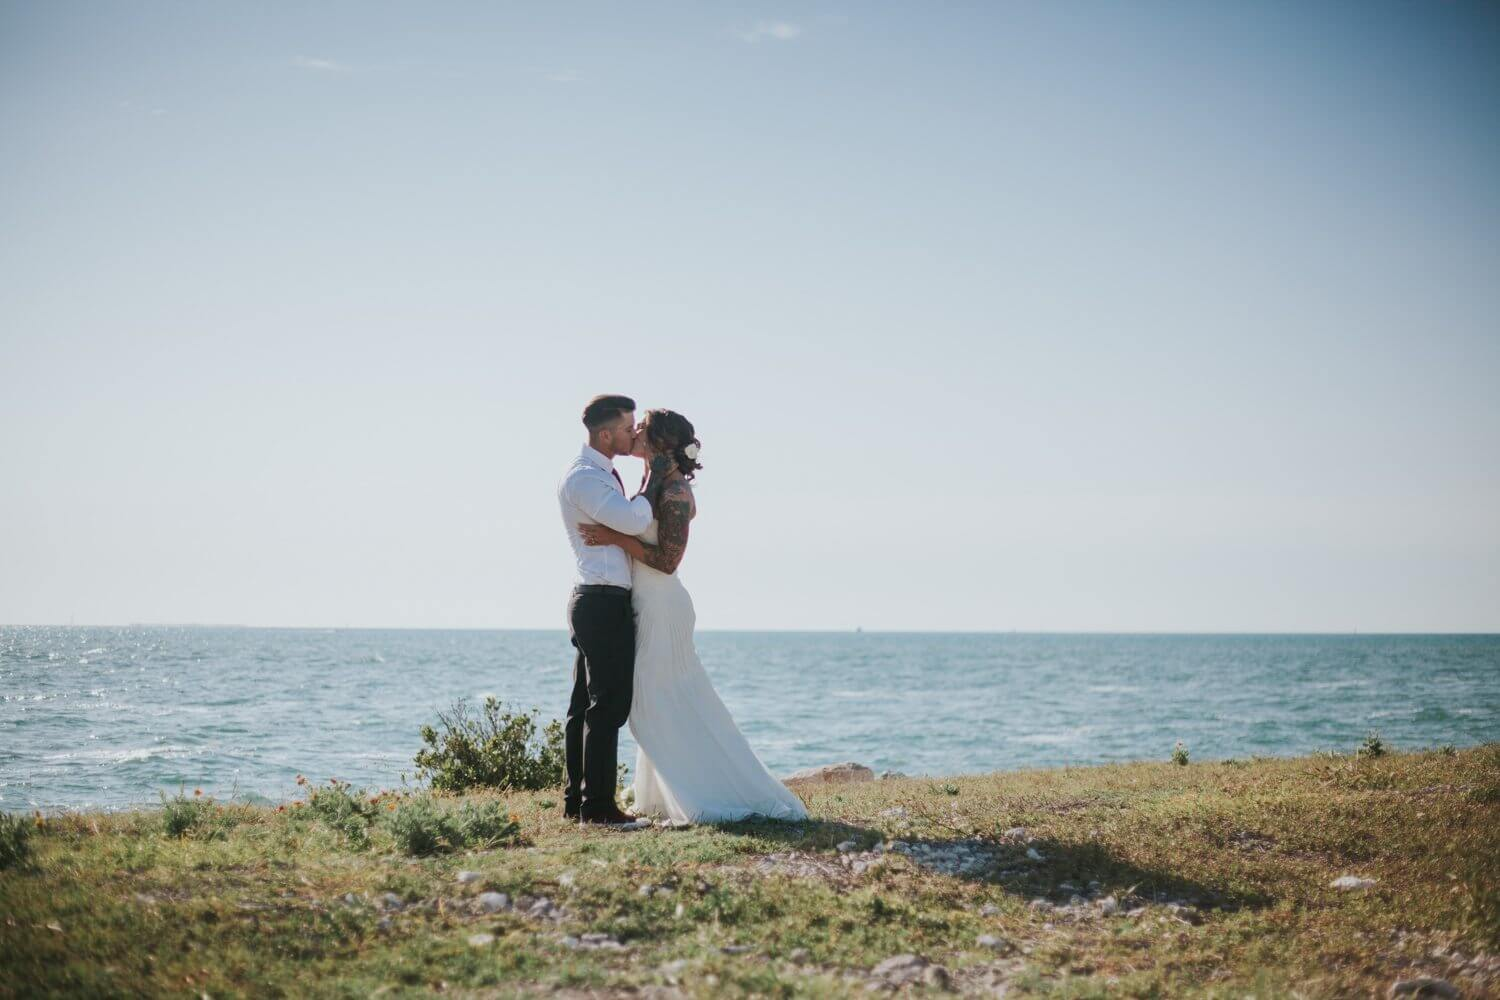 Fort Zachary Taylor Elopement KJ 16 - Key West Elopement - Fort Zachary Taylor - Key West Wedding Photographer